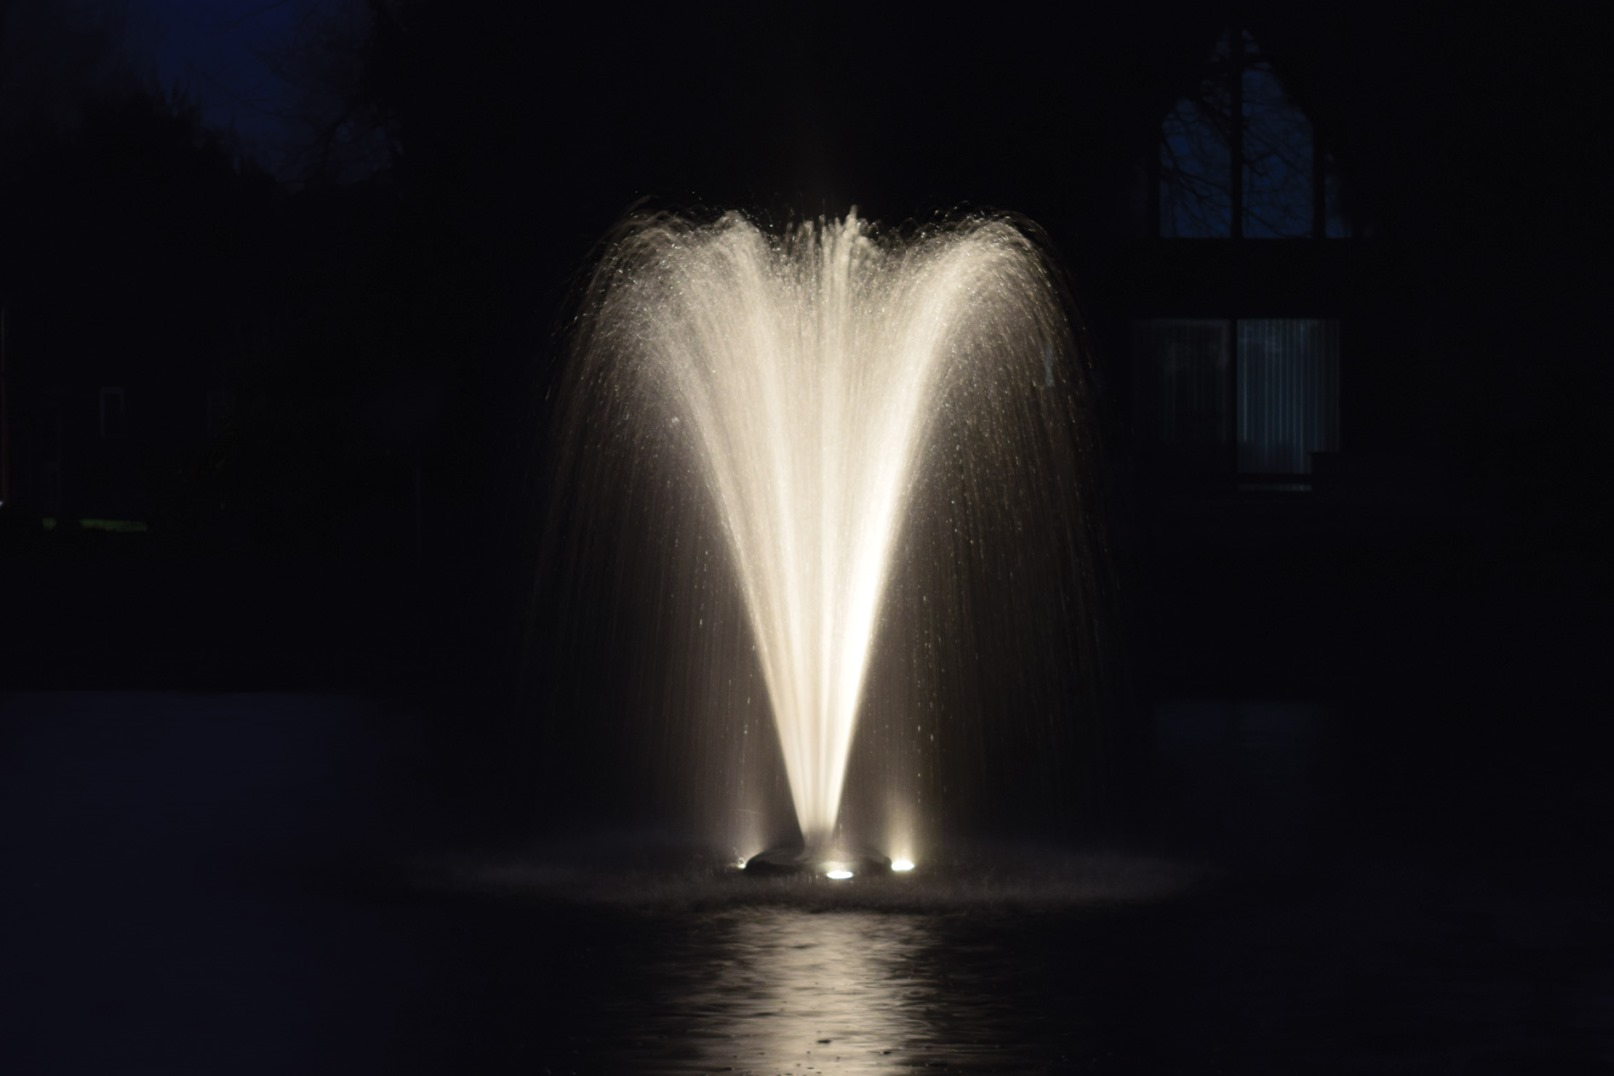 Easypro 2 Light Warm White Led Fountain Kits